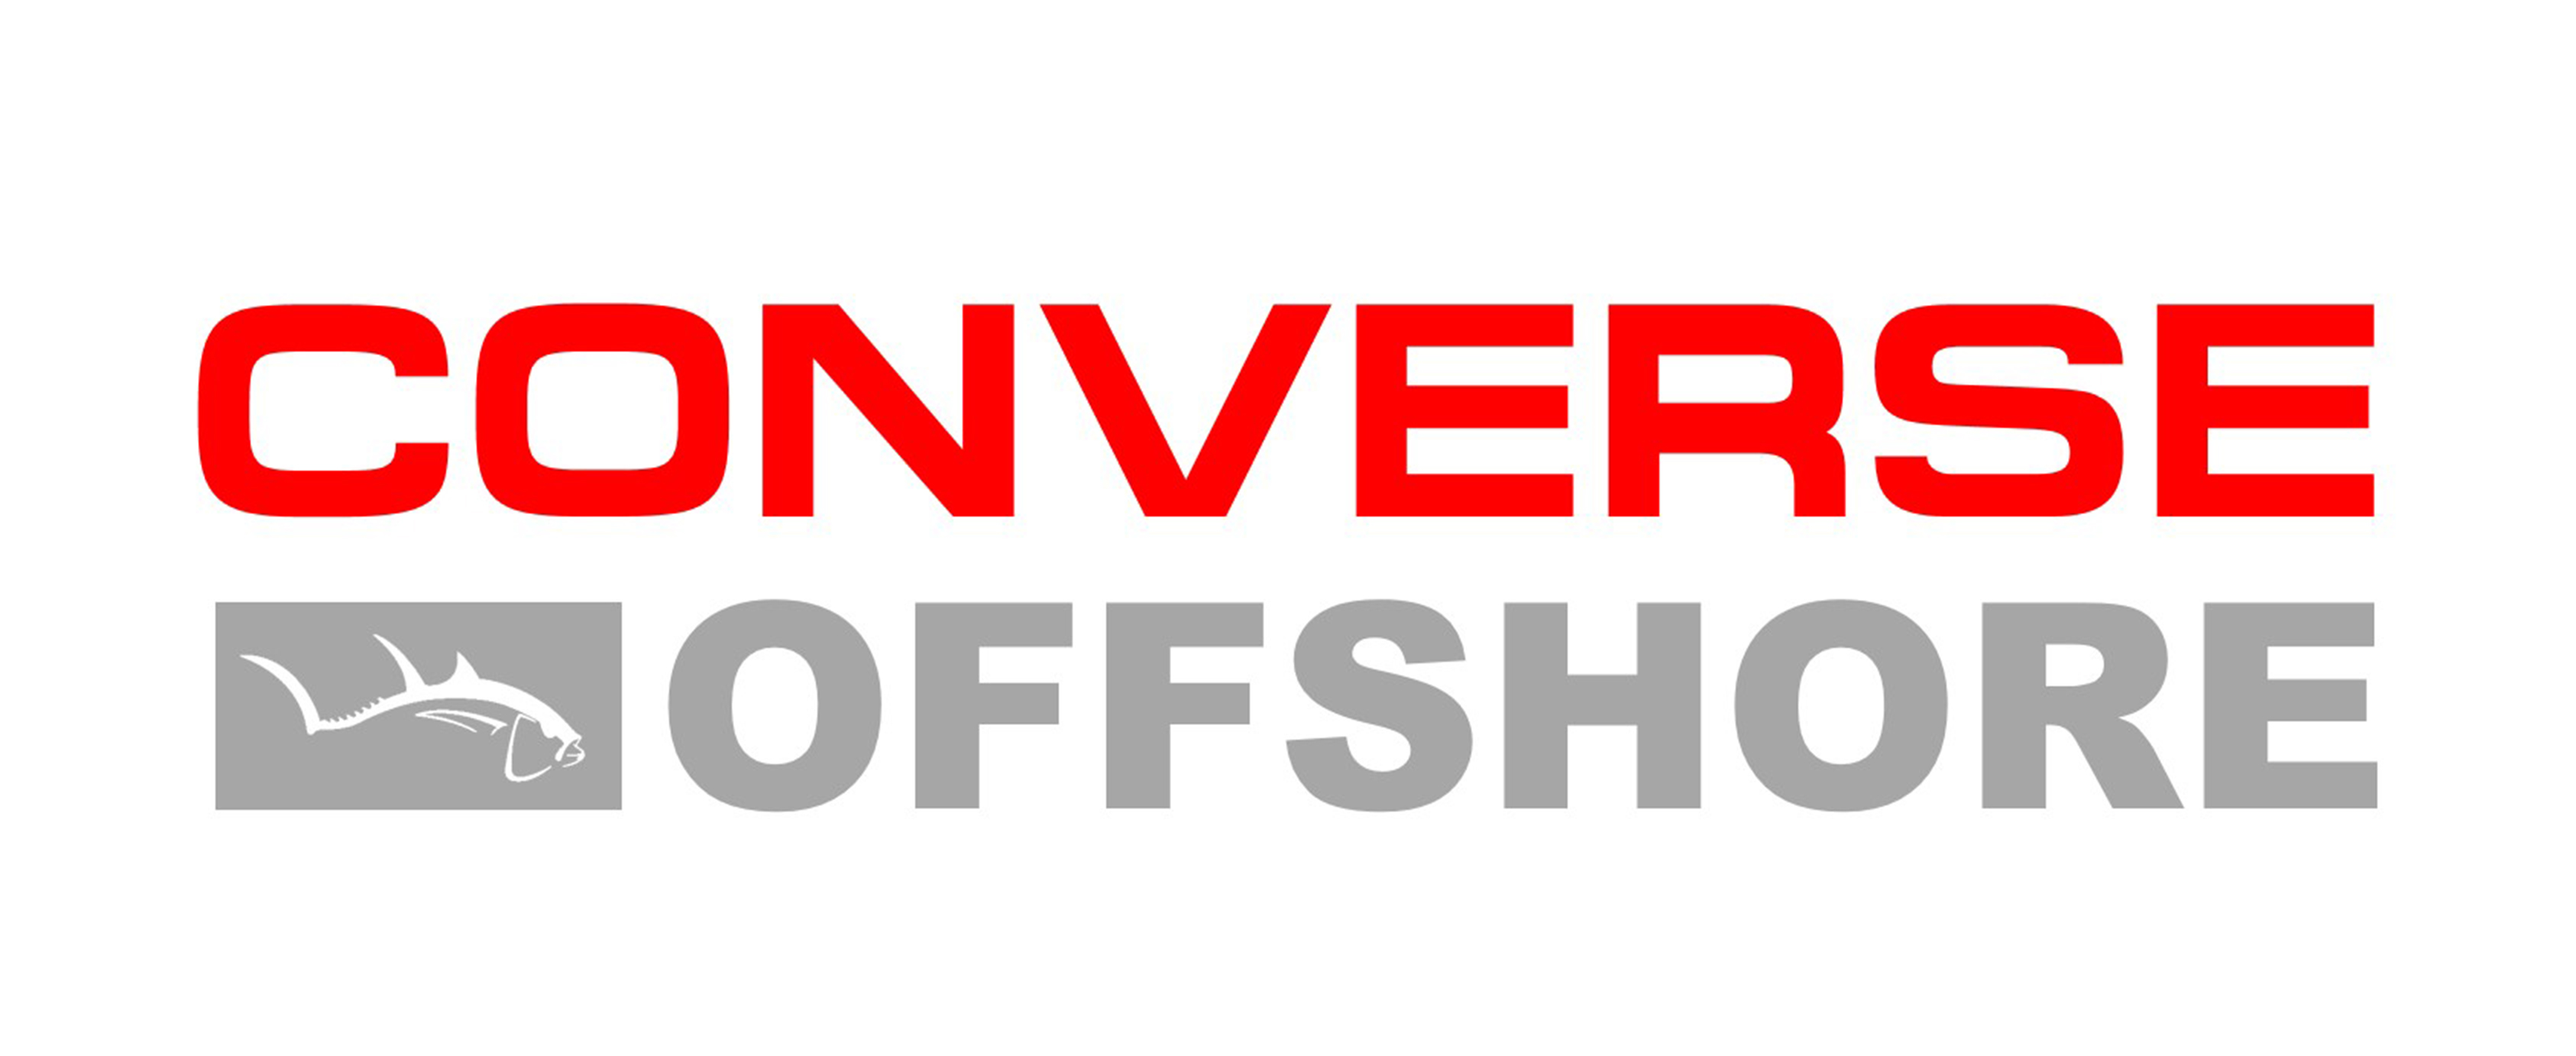 Converse Offshore